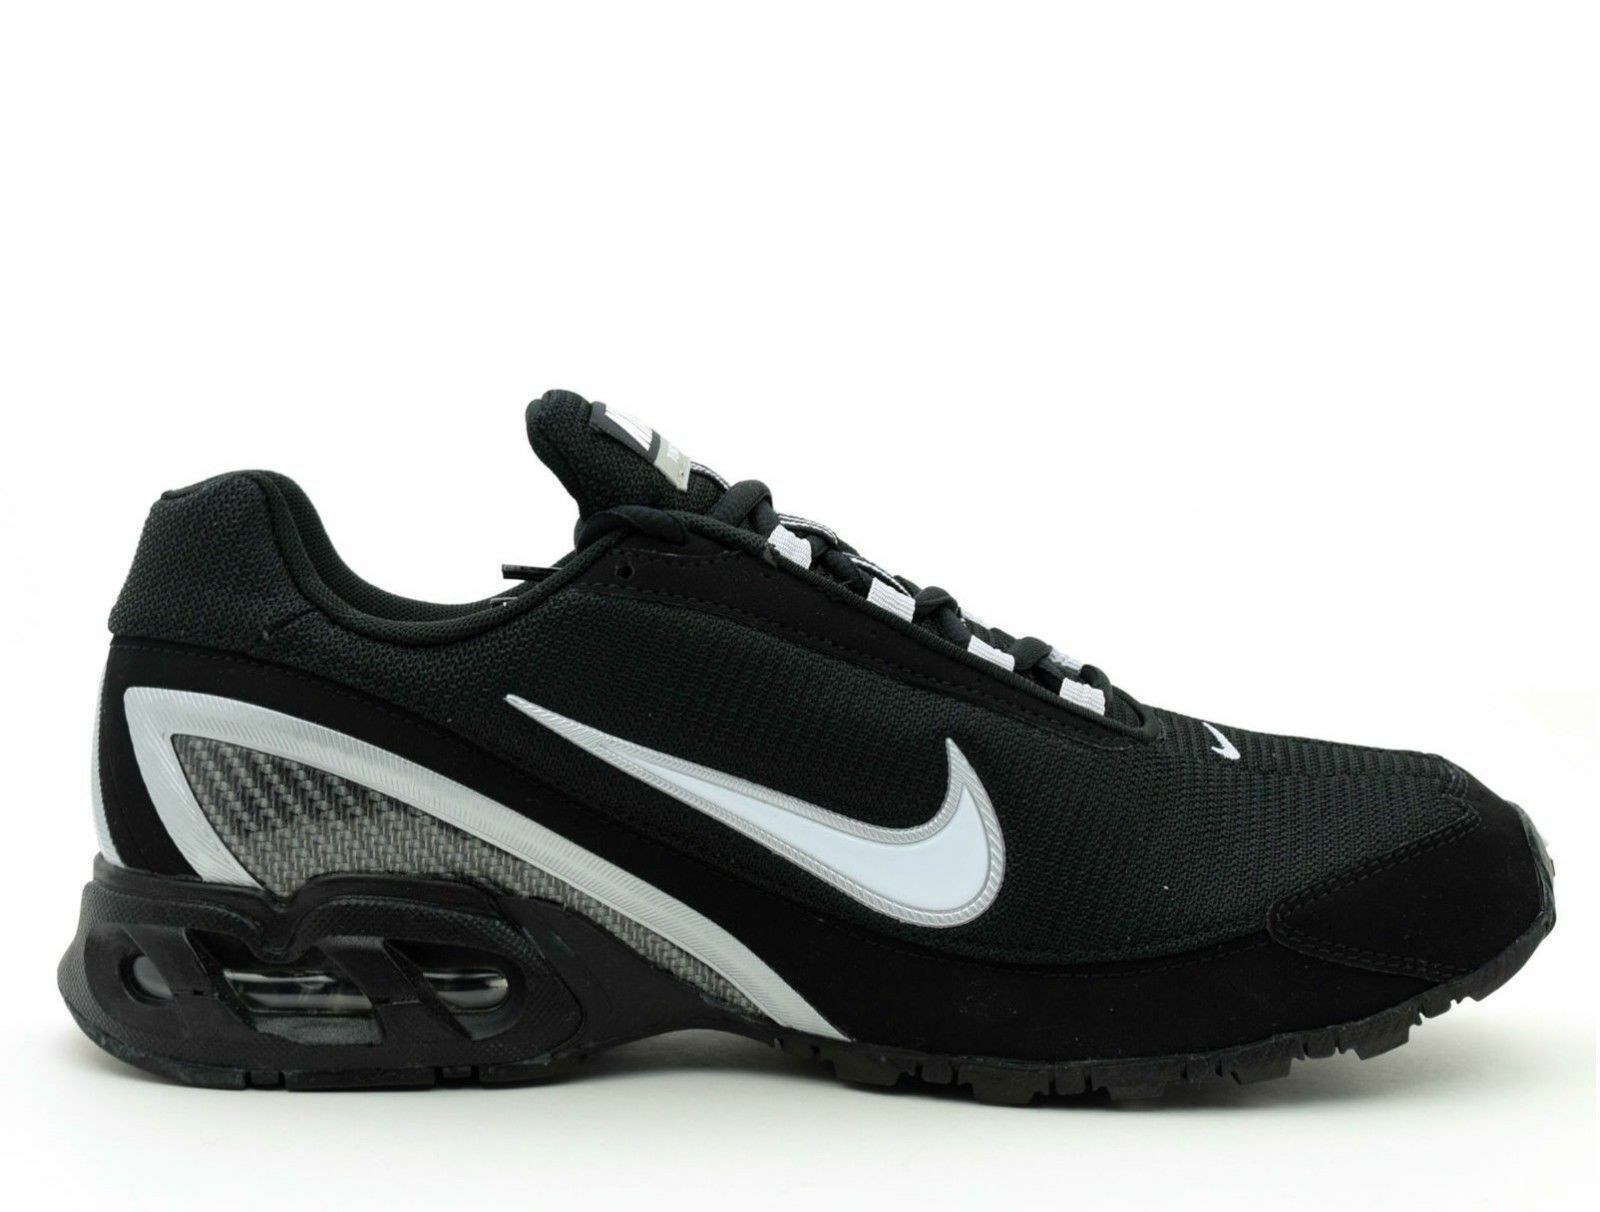 Mens Nike Air Max Torch 3 319116-011 Black White NEW Size 10.5